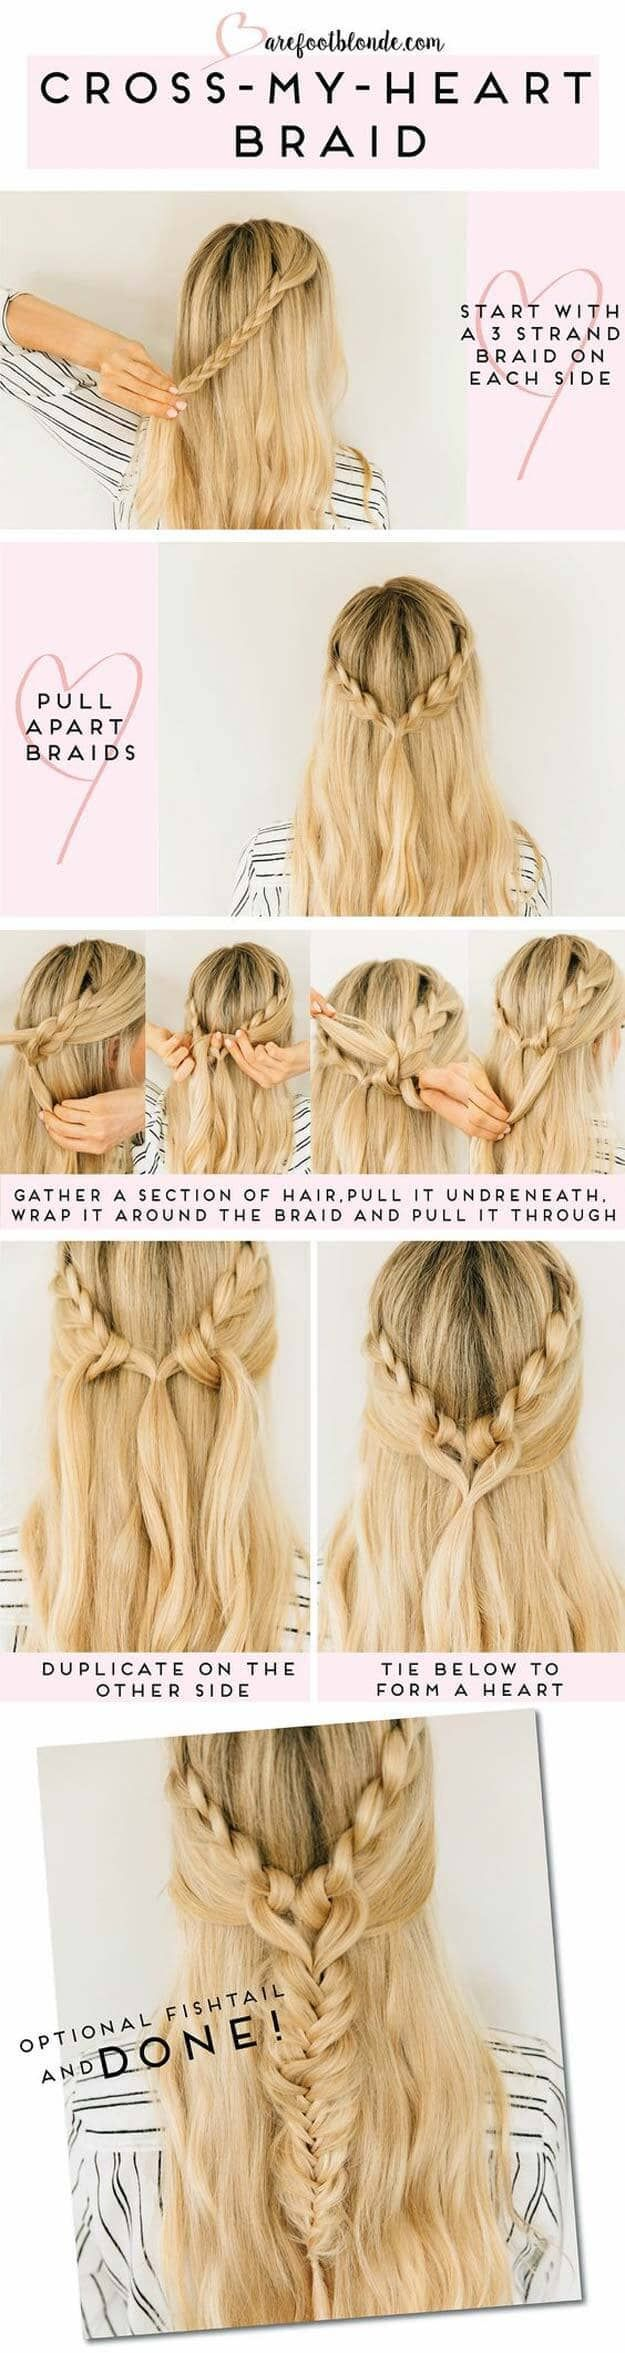 25 Braided Hair Inspirations That You Need To Try Out – #Braided #Hair #Inspirat…